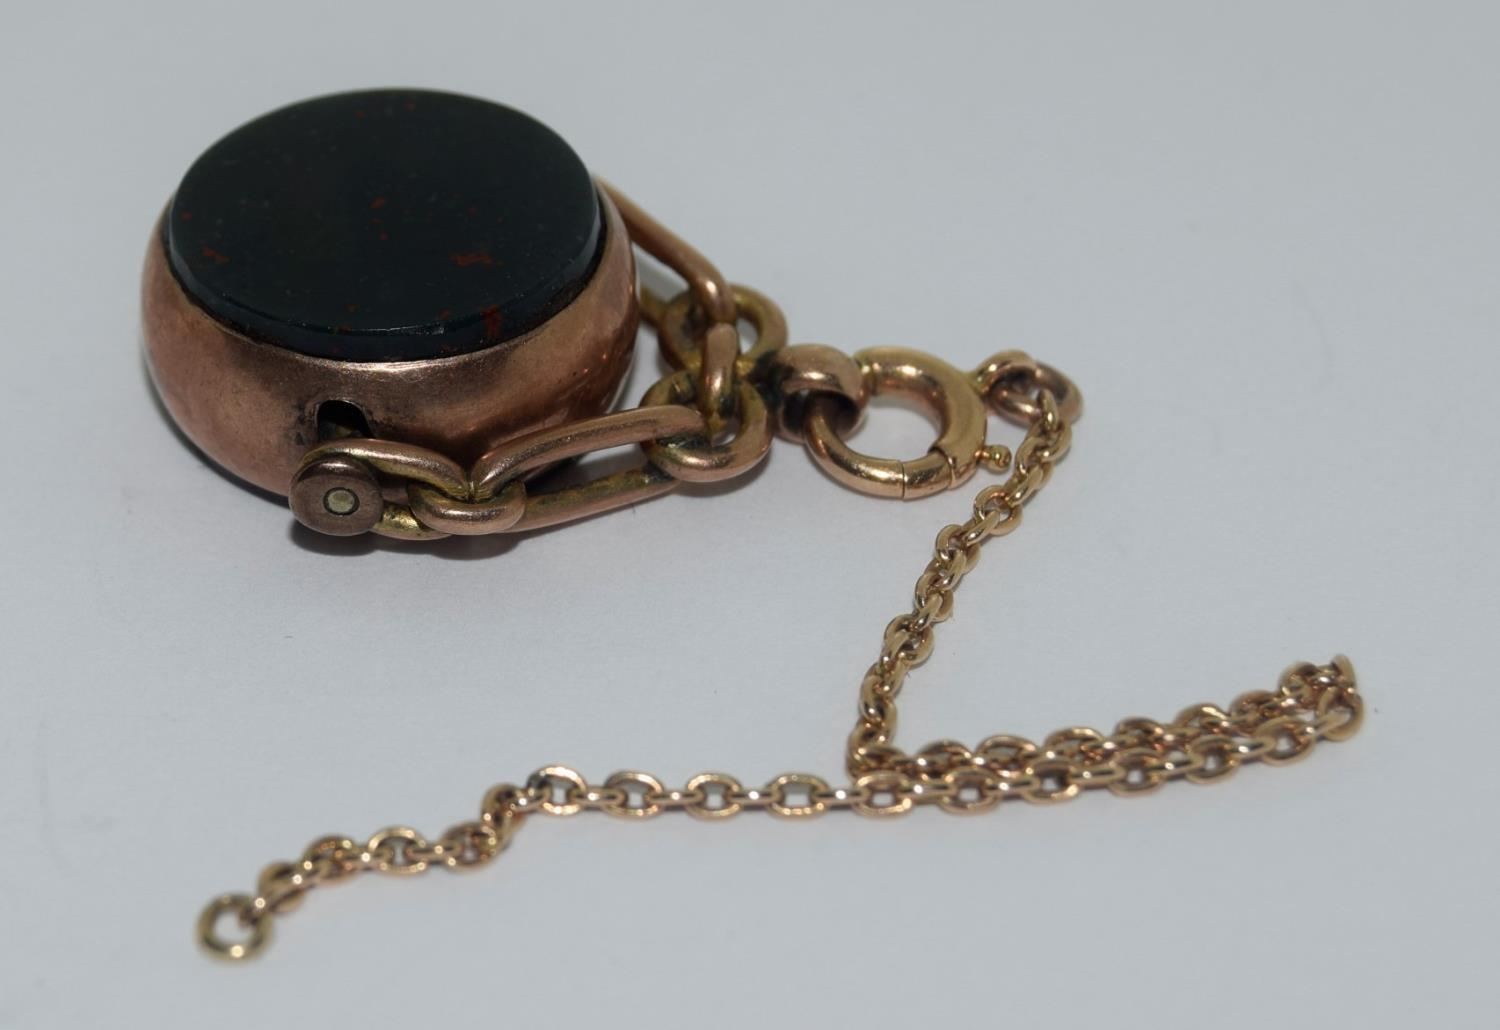 9ct gold ladies watch and strap together an agate watch fob - Image 6 of 9